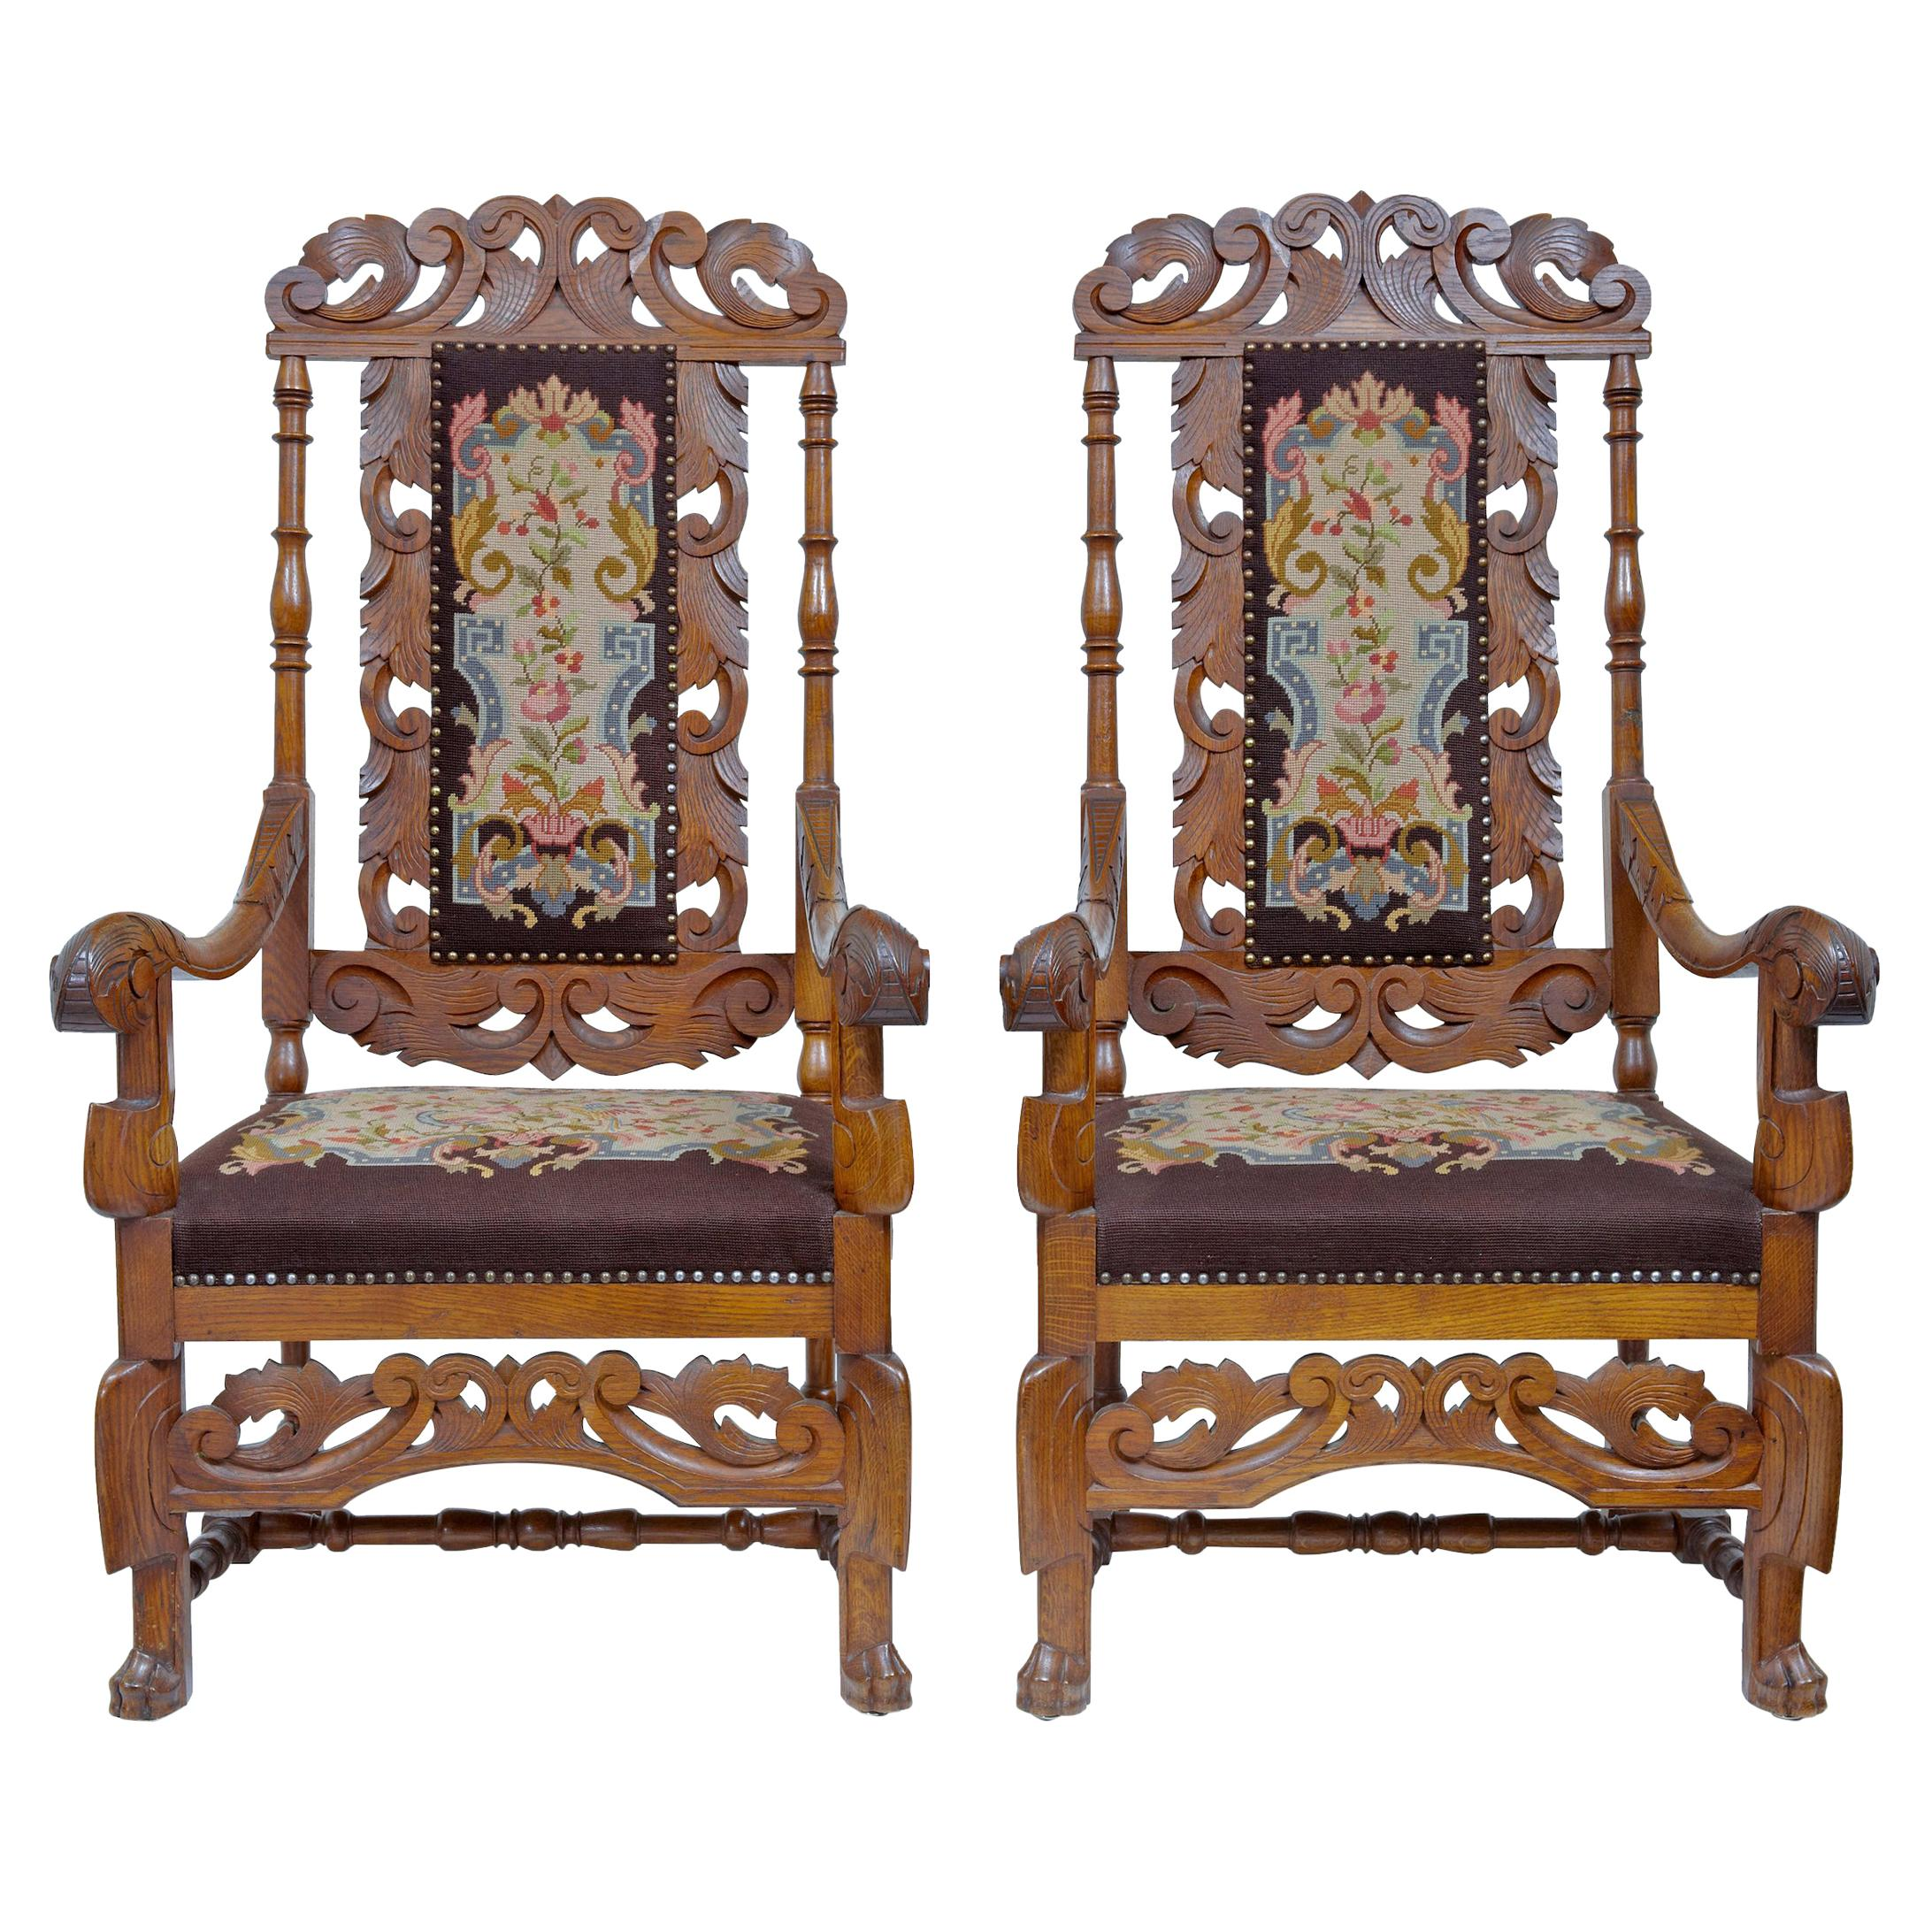 Pair of 19th Century French Oak Throne Armchairs